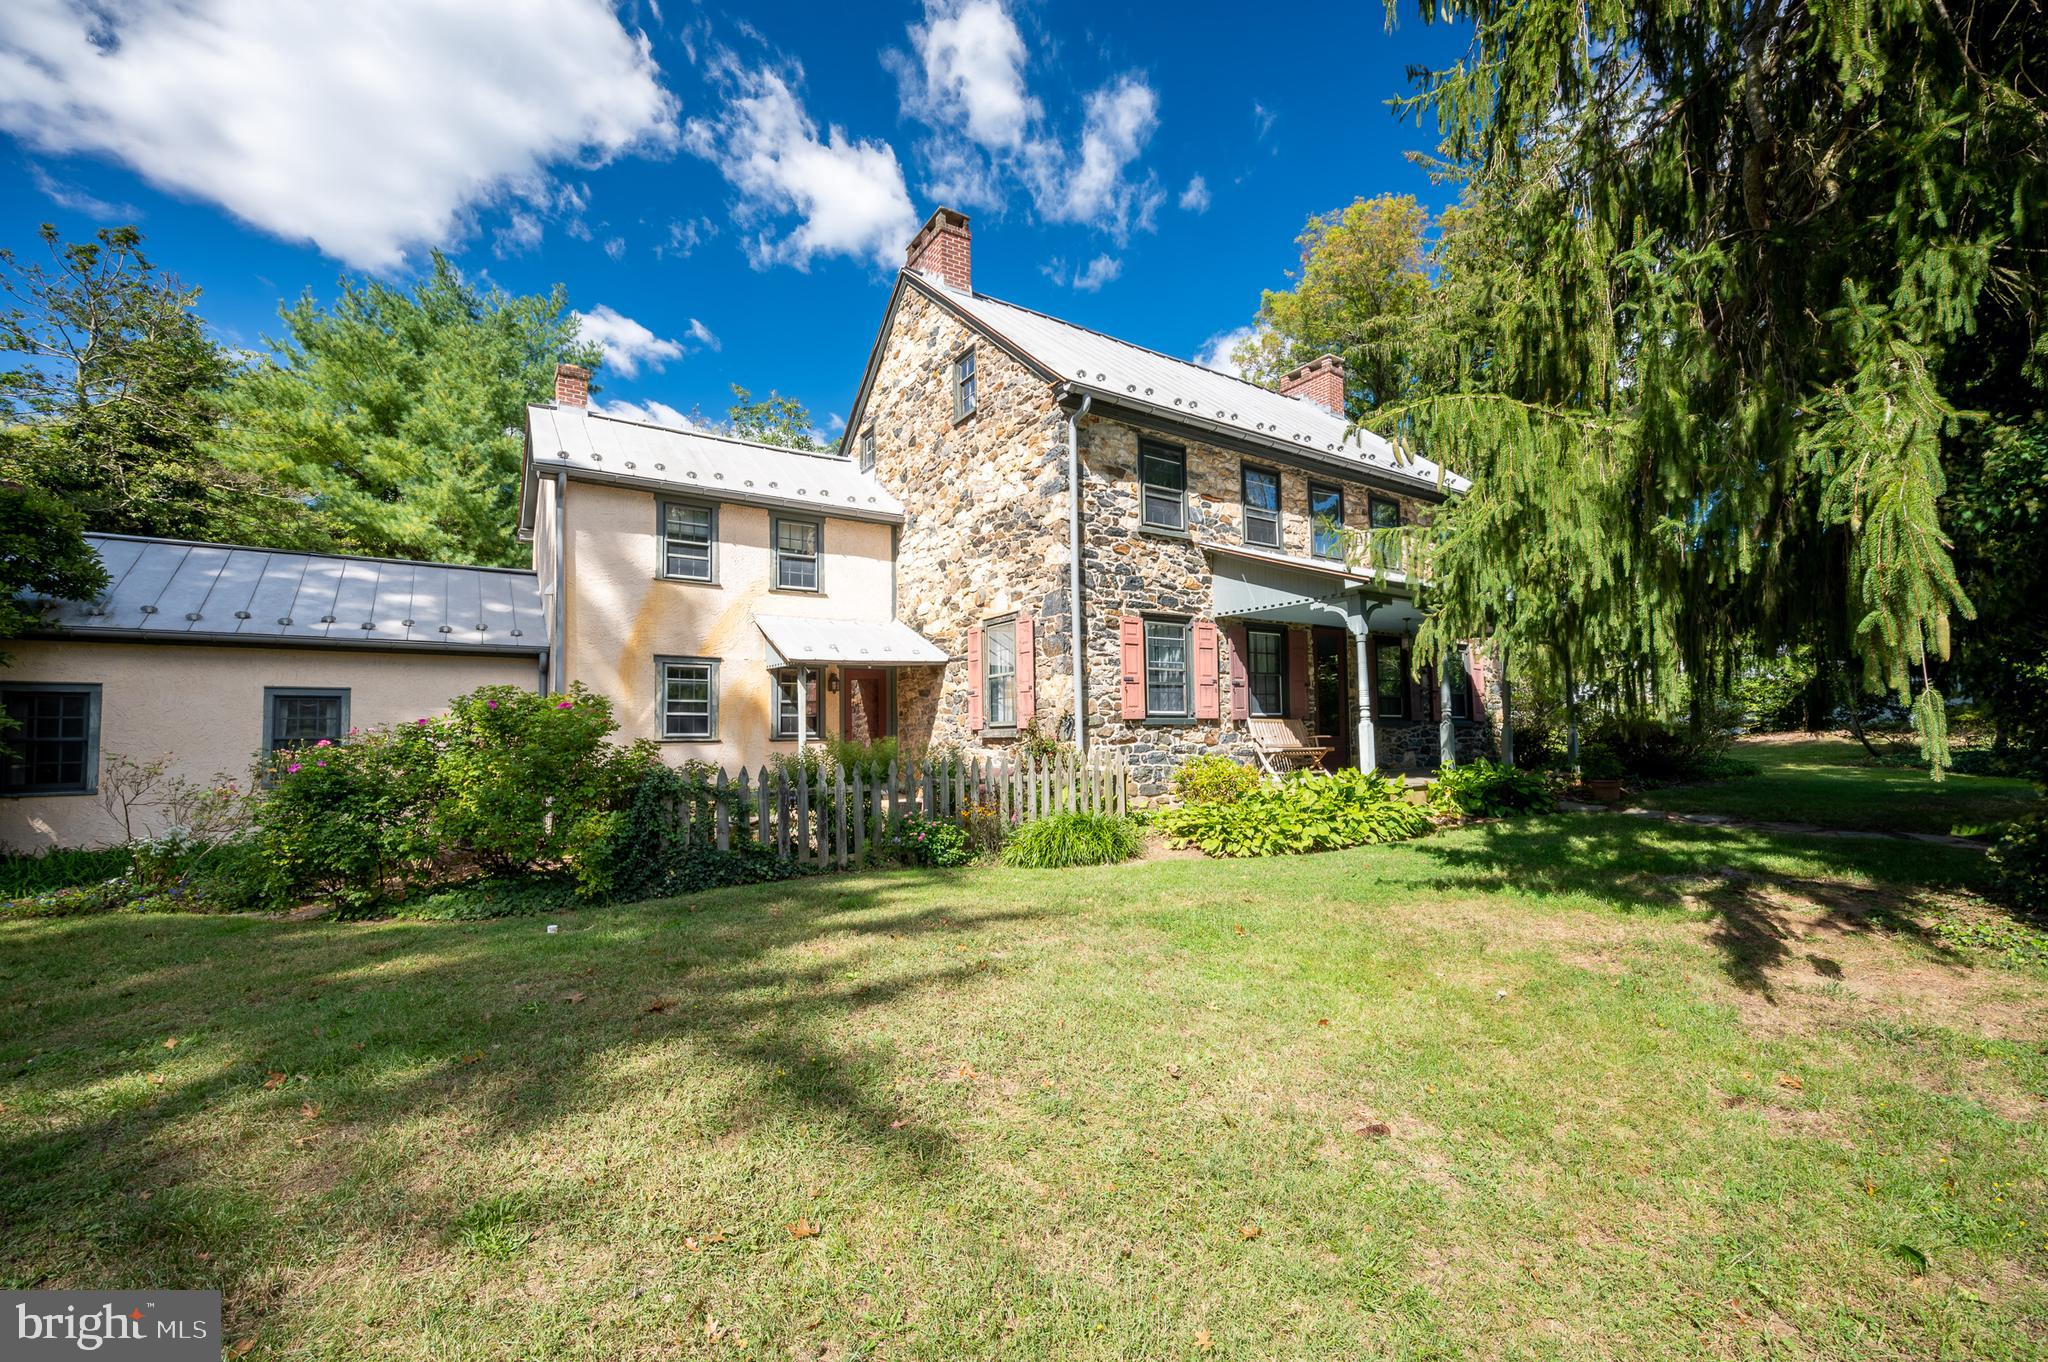 Rare opportunity to own a piece of history in the Red Clay Valley.  The original stone house was built in 1823 by the Montgomery on or near the site of a log cabin built by the Montgomery ancestors. In 1888 the home was purchased by the Mitchell family at a sheriff's sale. A two story addition was added shortly after along with Victorian features such as the front porch. Both the original house and the addition were stuccoed. The house stayed in the Mitchell family for over 100 years which it was purchased and restoration began. The current owners purchased the home in 1995 and over the course of 3 years finished the restoration process and added the wing to the home that includes the primary bathroom, laundry room, family room, kitchen, powder room, and office. A historical reproduction of an old barn was built as the garage. Native plants,   patio, and stone walls with stairway to back door were added to enhance the natural lay of the land. In 2001 an outbuilding in keeping with the architecture was built to house an Endless Pool. Inside the home you will find modern amenities like the nicely appointed kitchen with abundant cabinetry, stainless appliances and granite counters seamlessly blended with the original architectural features like the original cooking fireplace, stone entry step,  and 5 fireplaces. The original well has even been preserved under one of the additions as an architectural feature with access by a trap door covering the well protected by safety glass and lite from underneath. An updated primary suite is comprised of bedroom with fireplace, spacious dressing area with built-in cabinetry, smaller dressing area that leads to private bathroom and laundry room. A back staircase leads down to the breakfast room and kitchen. Main floor has a traditional feel with a front keeping room at the front door, den with corner fireplace, spacious front to back dining room, kitchen with breakfast room with wood stove, and family room with gas fireplace. While